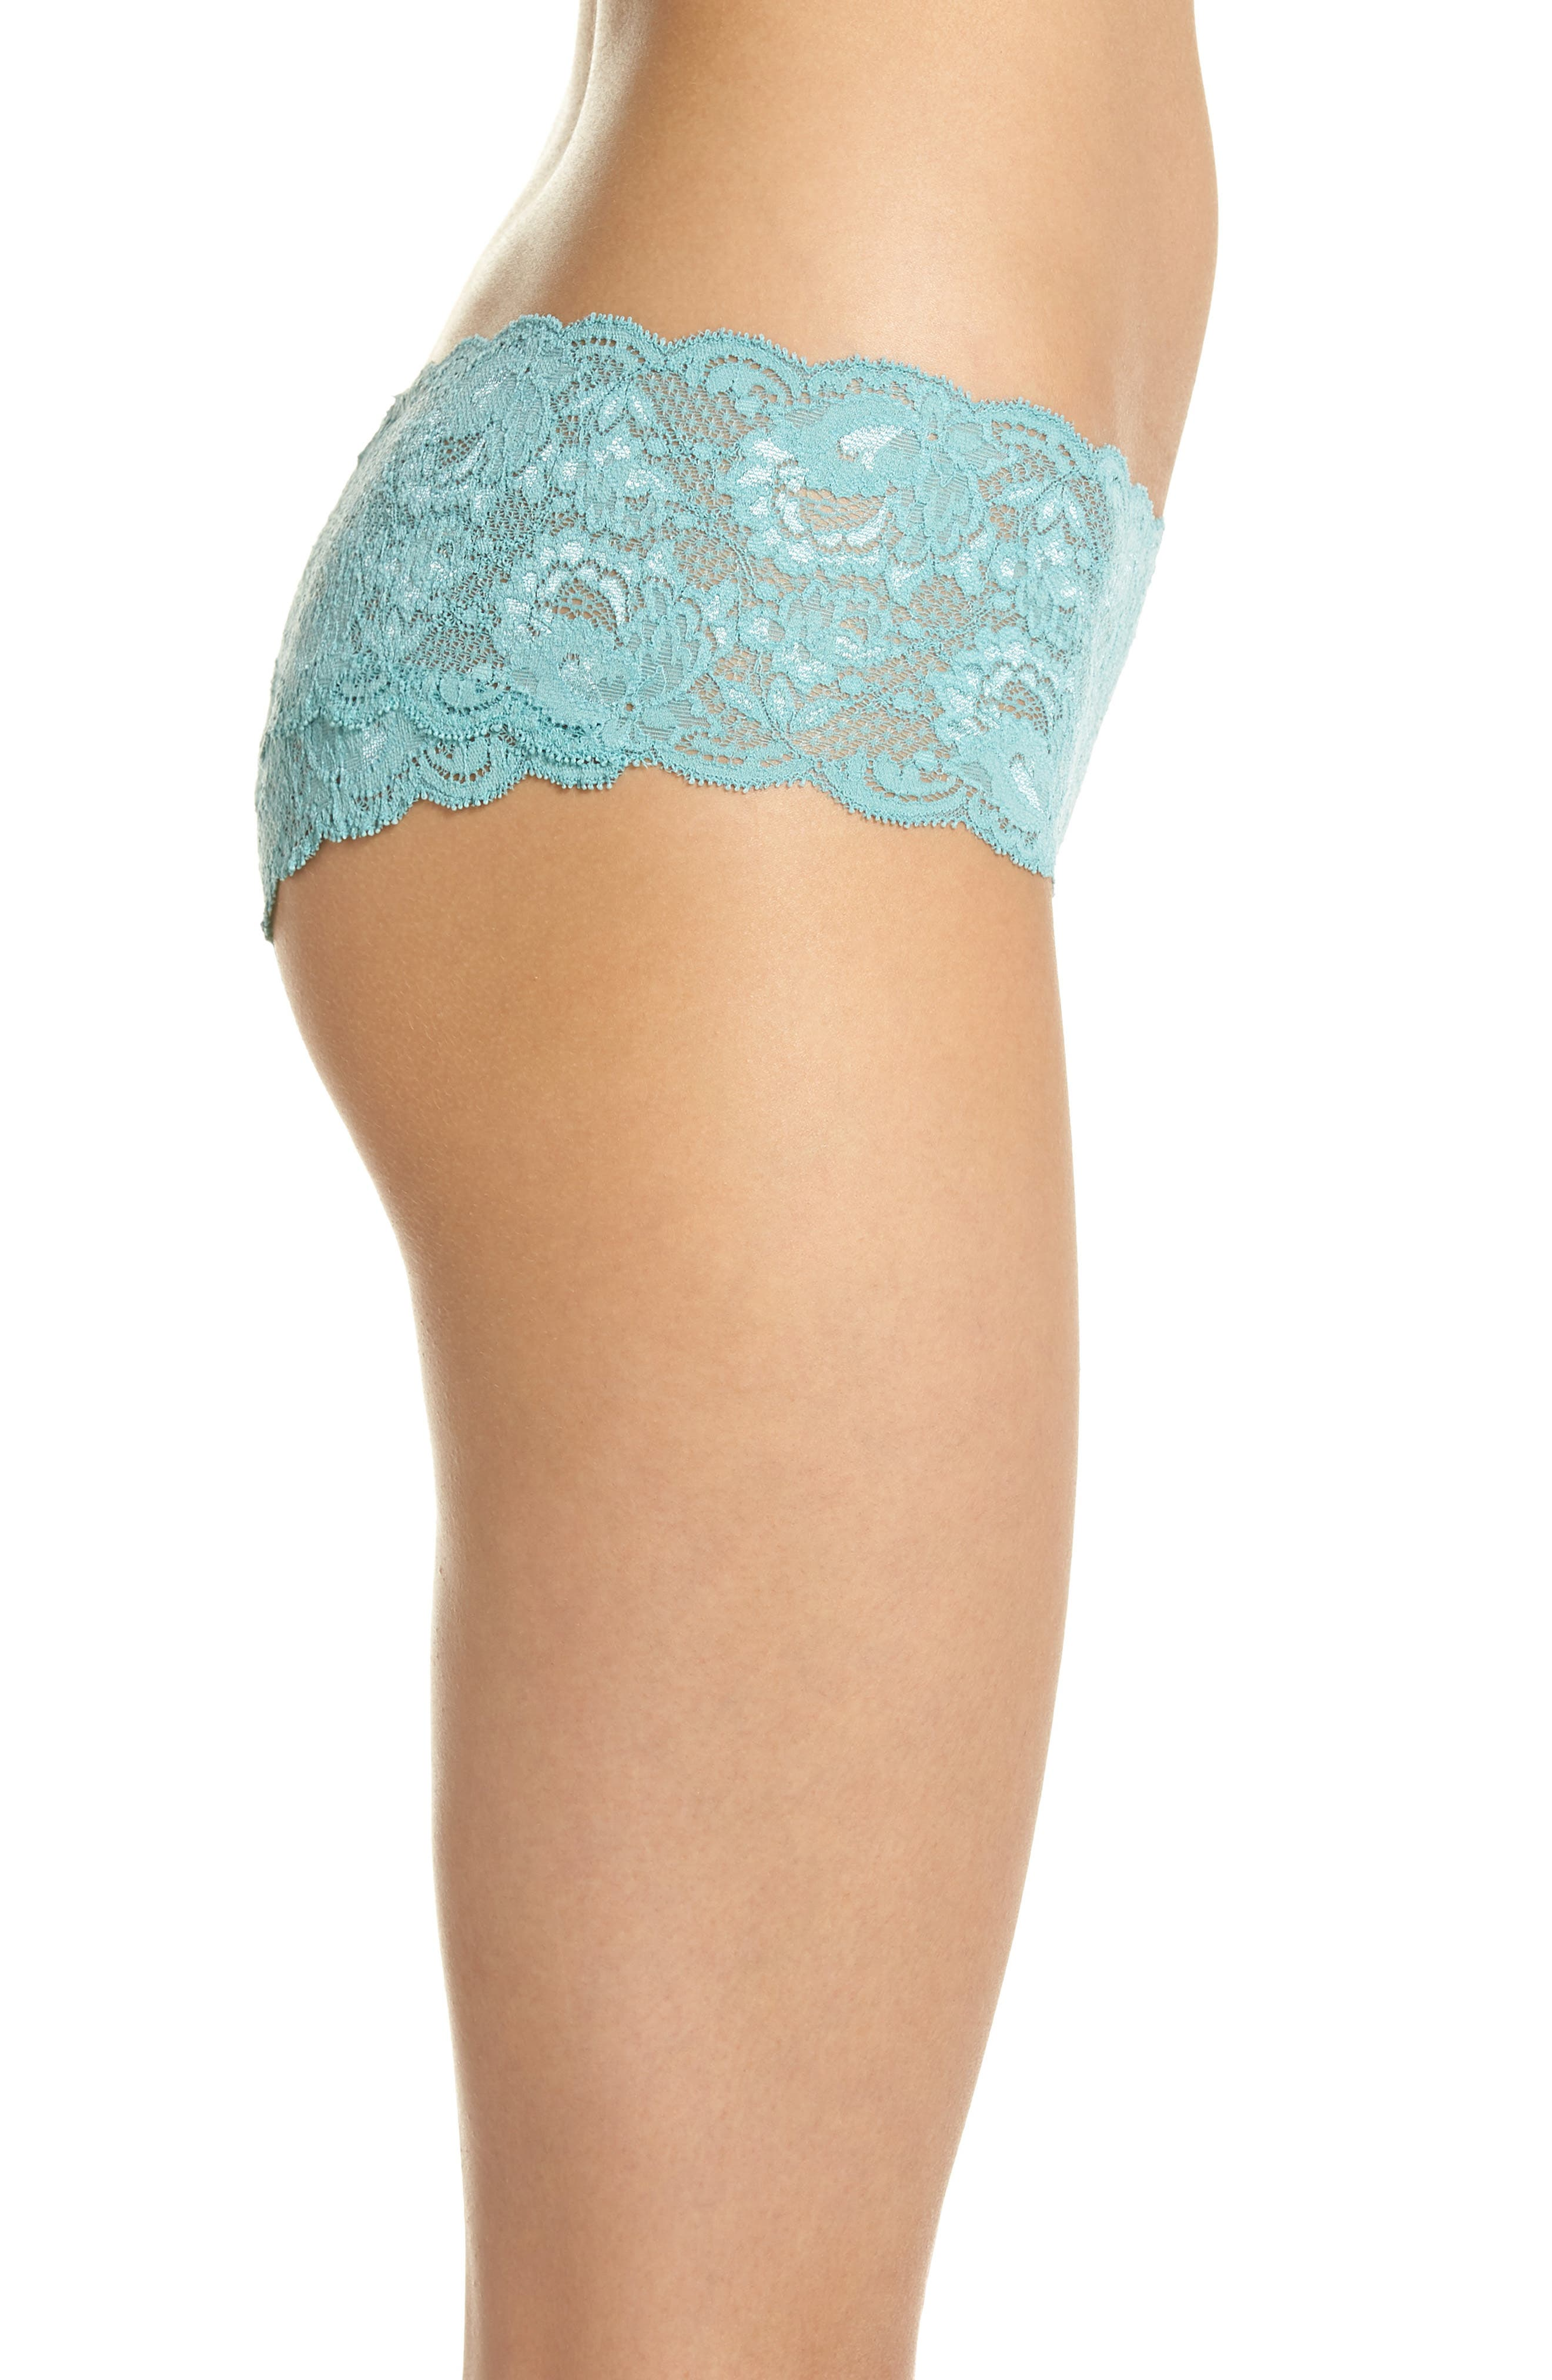 'Never Say Never' Hipster Briefs,                             Alternate thumbnail 3, color,                             Dusty Turquoise